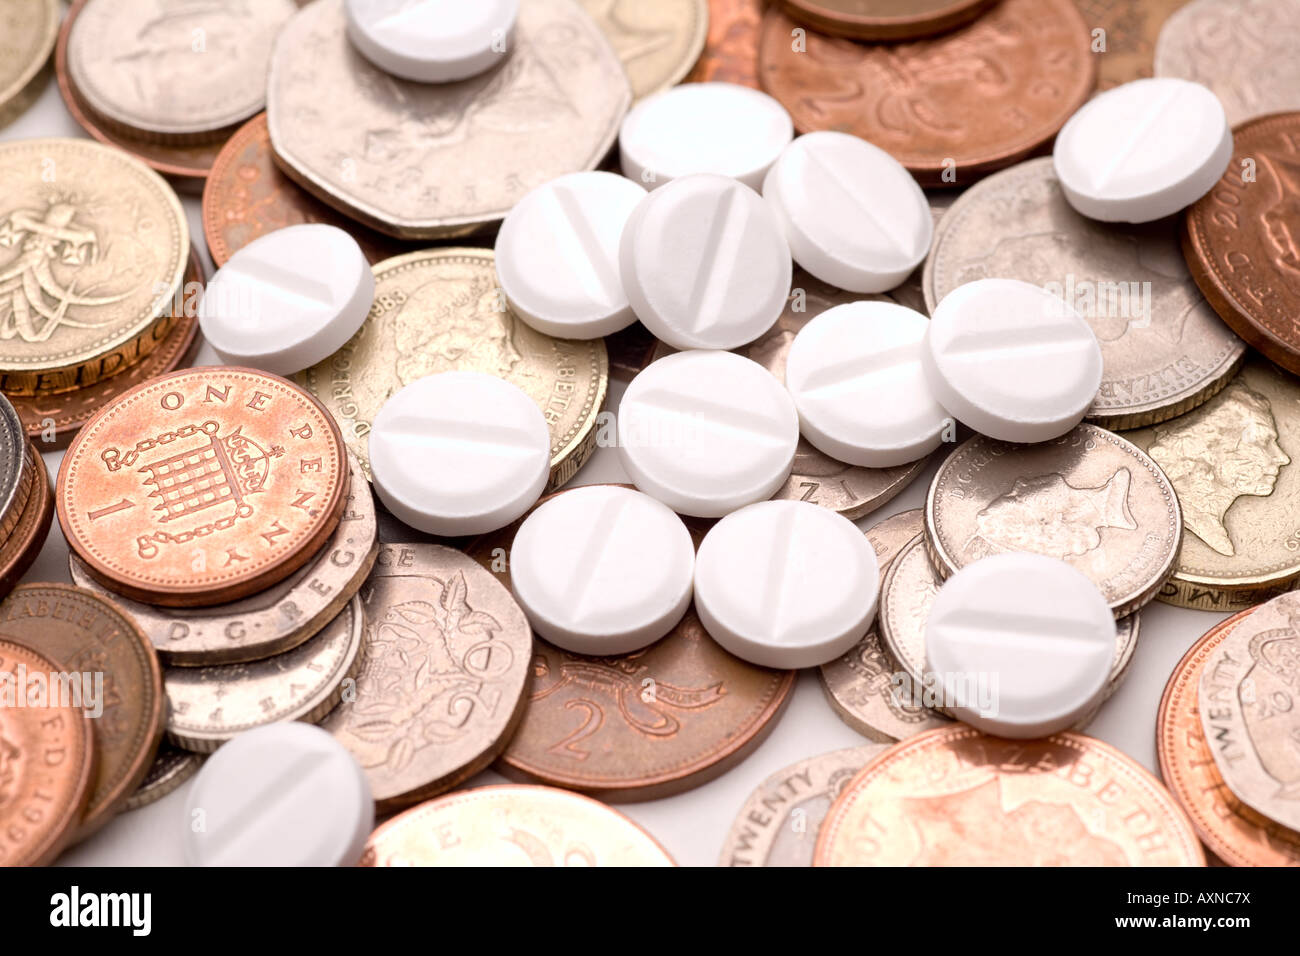 how to make money in the pharmaceutical industry